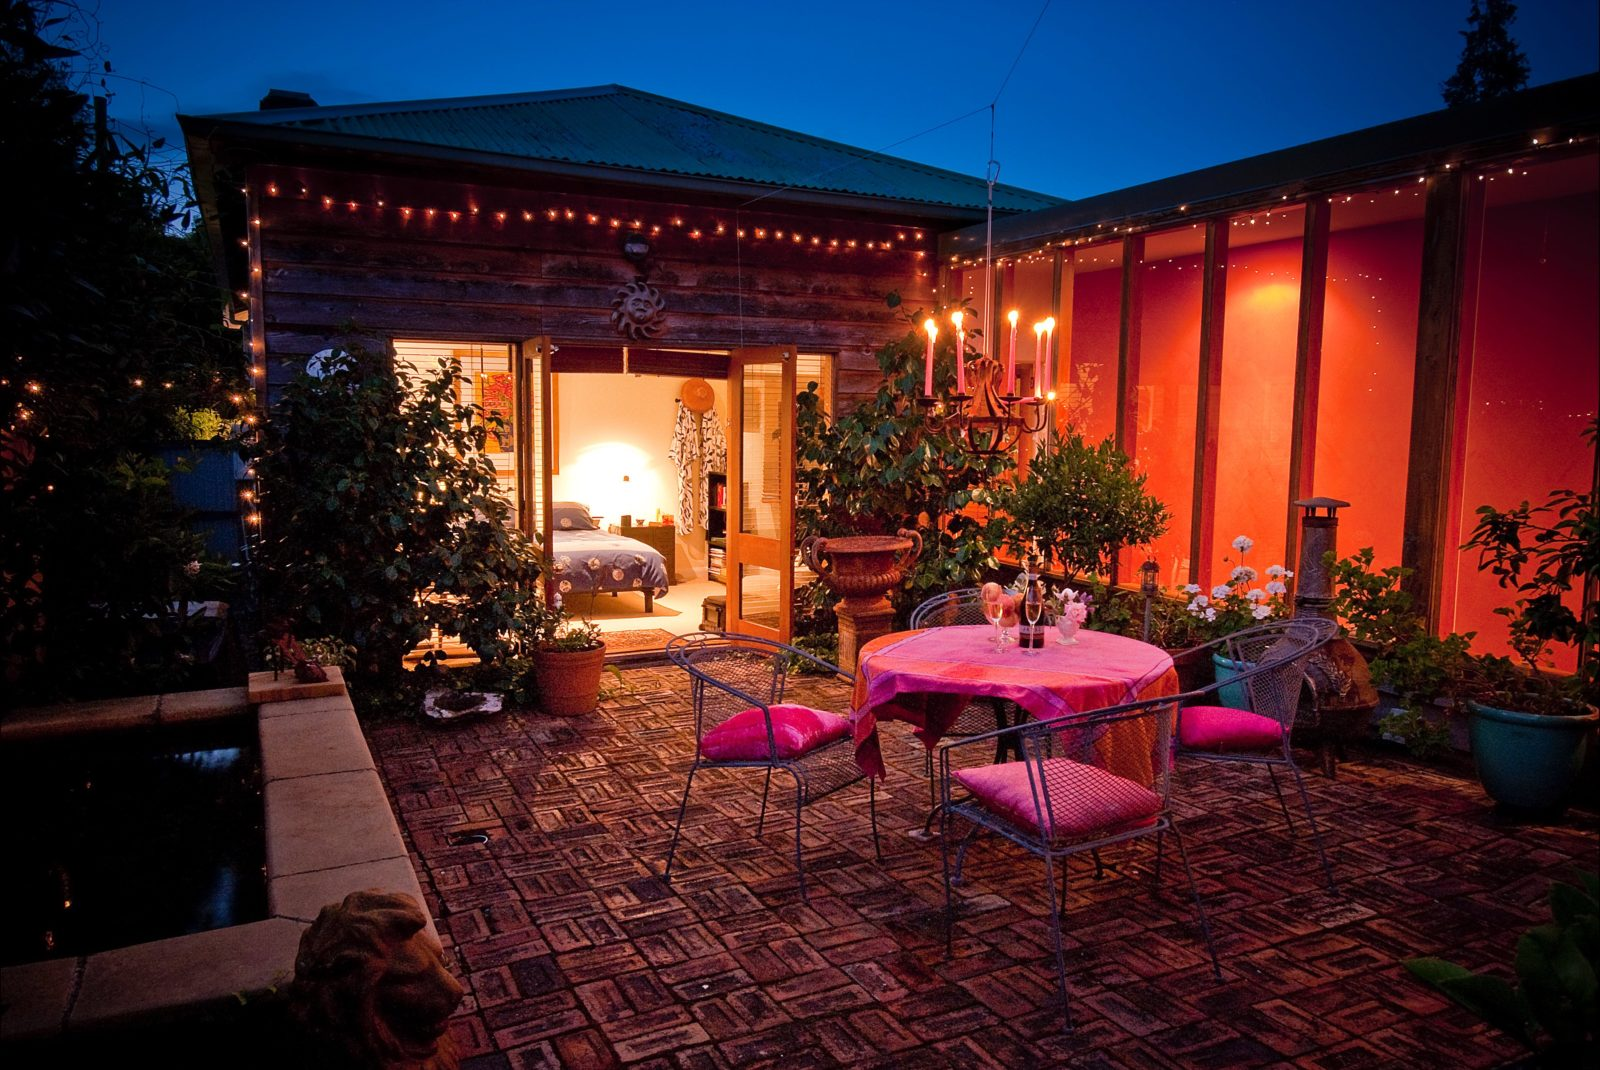 Private courtyard with warm glow of the chandelier and tinkling sounds of the fountain